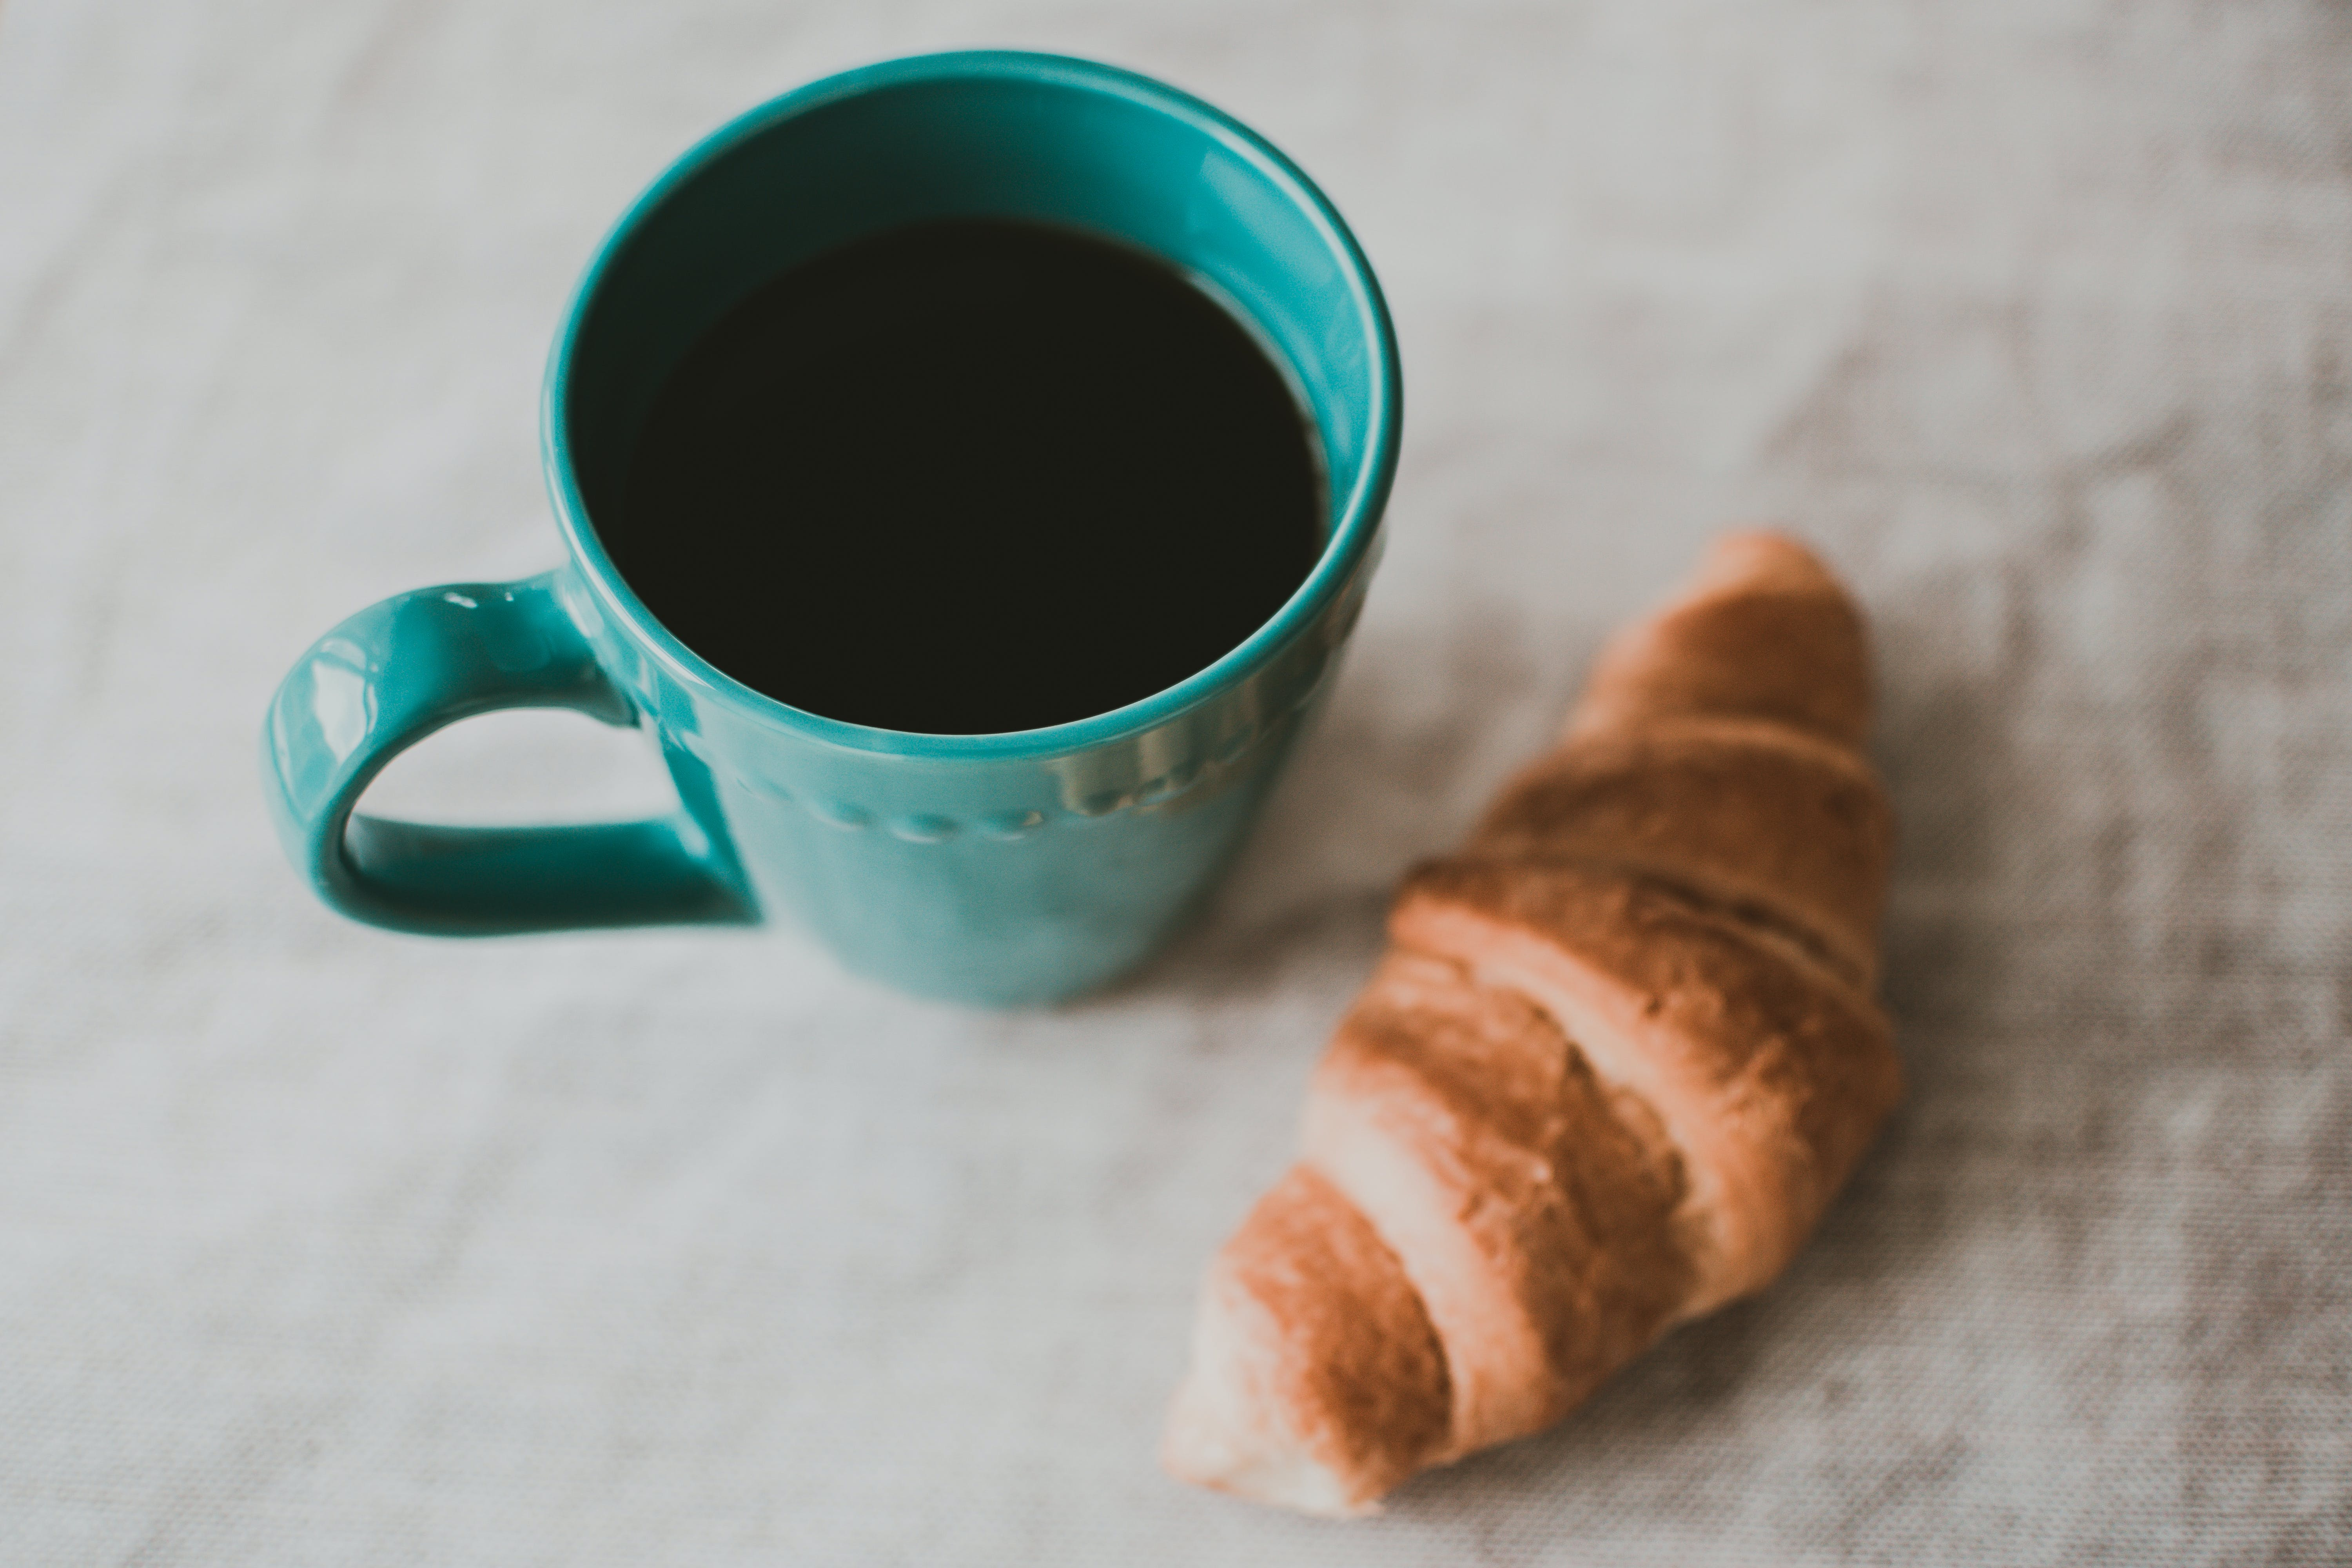 Teal Ceramic Mug Filled With Coffee Near Baked Bread